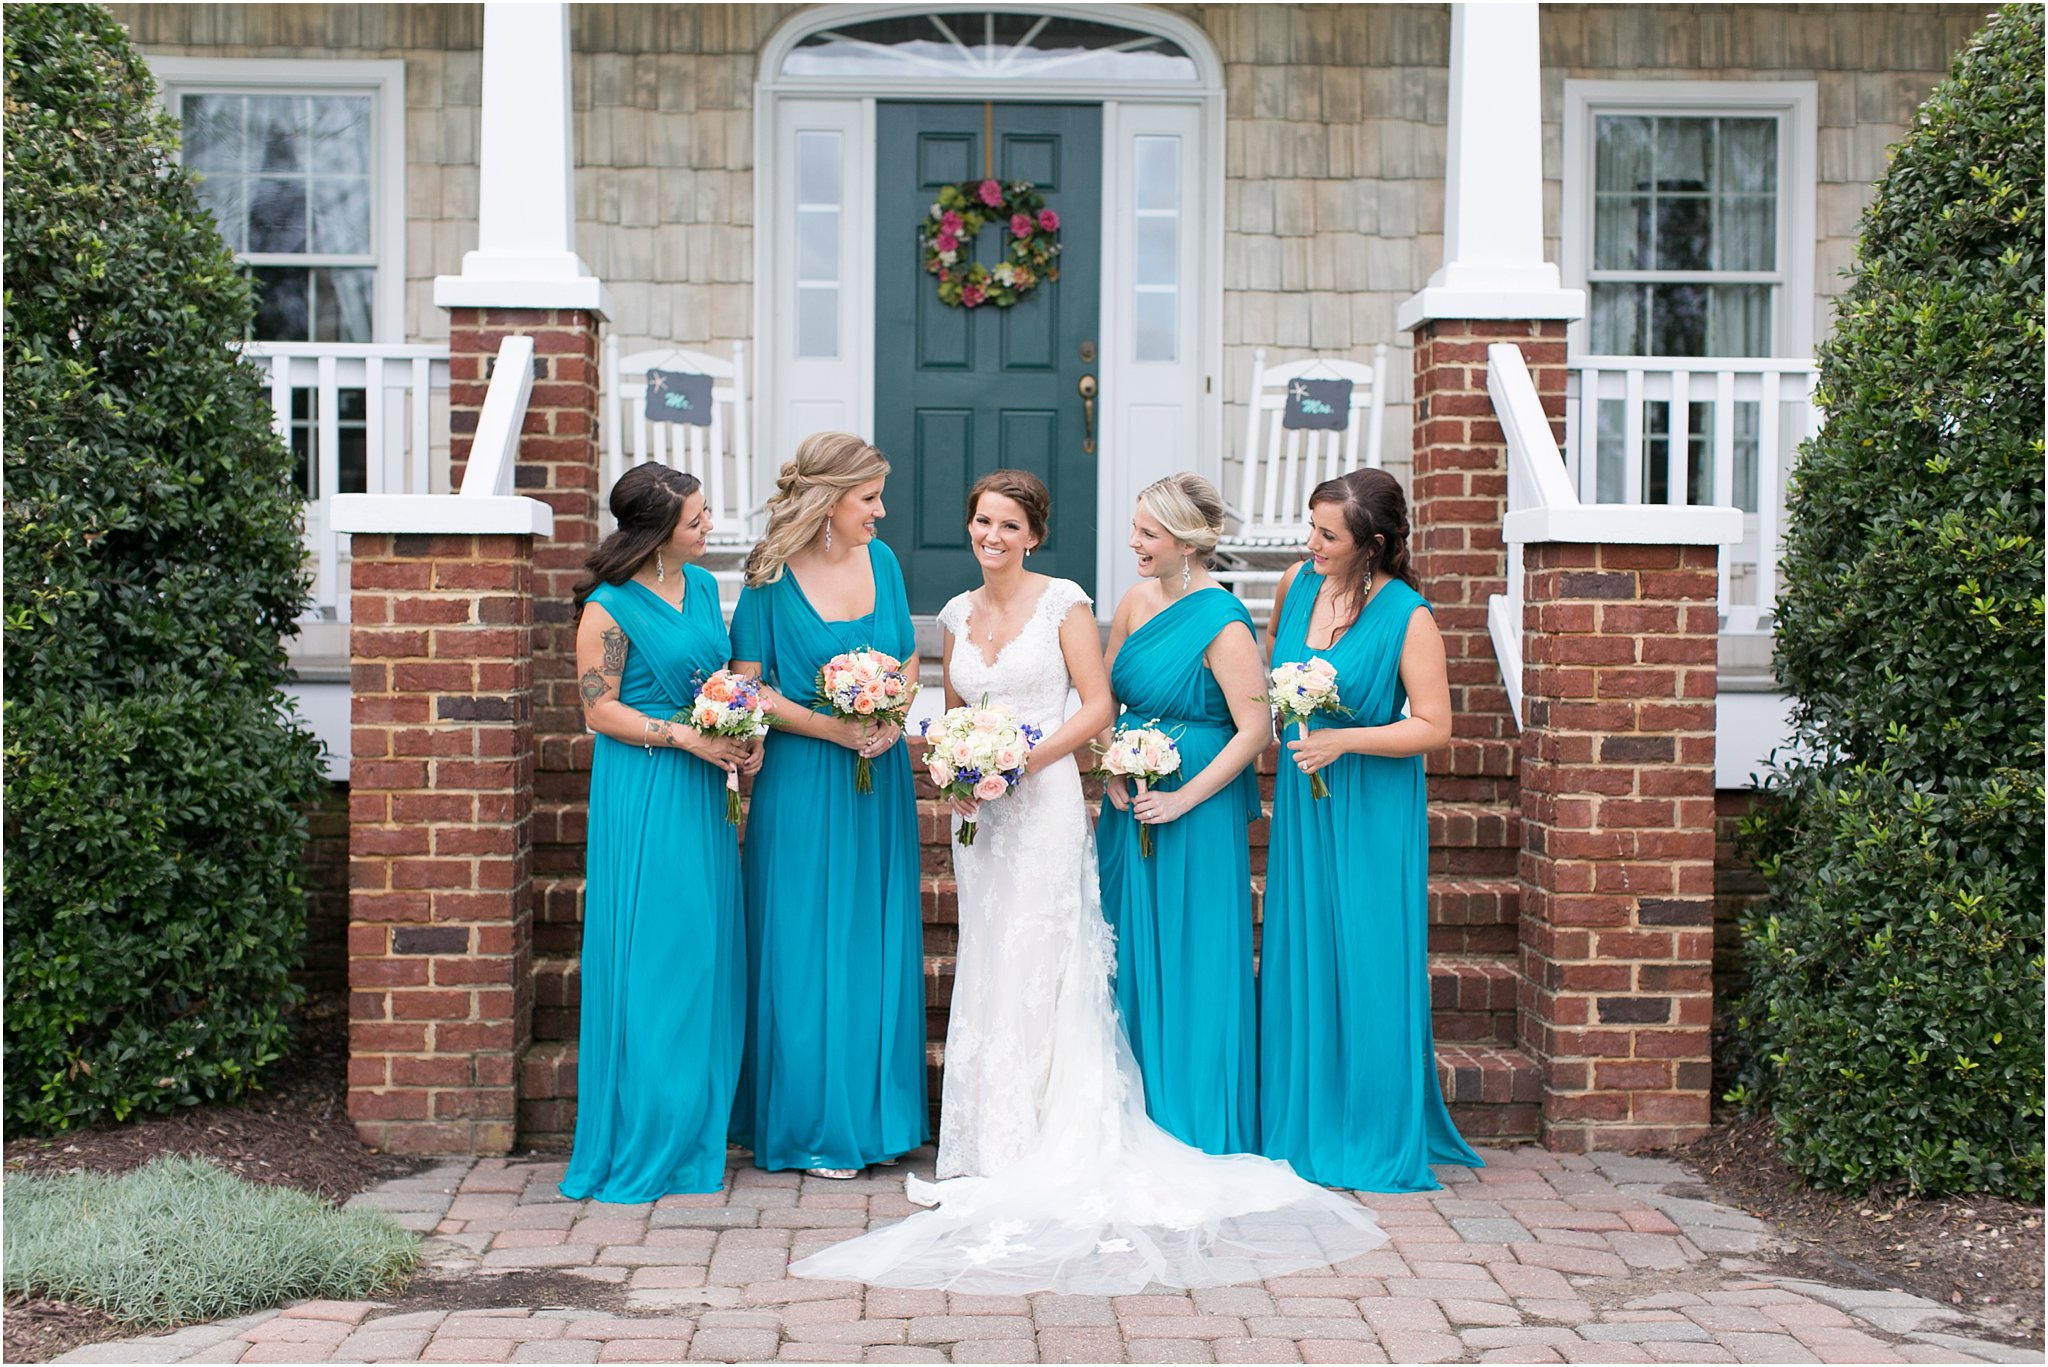 jessica_ryan_photography_virginia_wedding_photographer_wedding_hurricane__virginia_beach_shifting_sands_3467